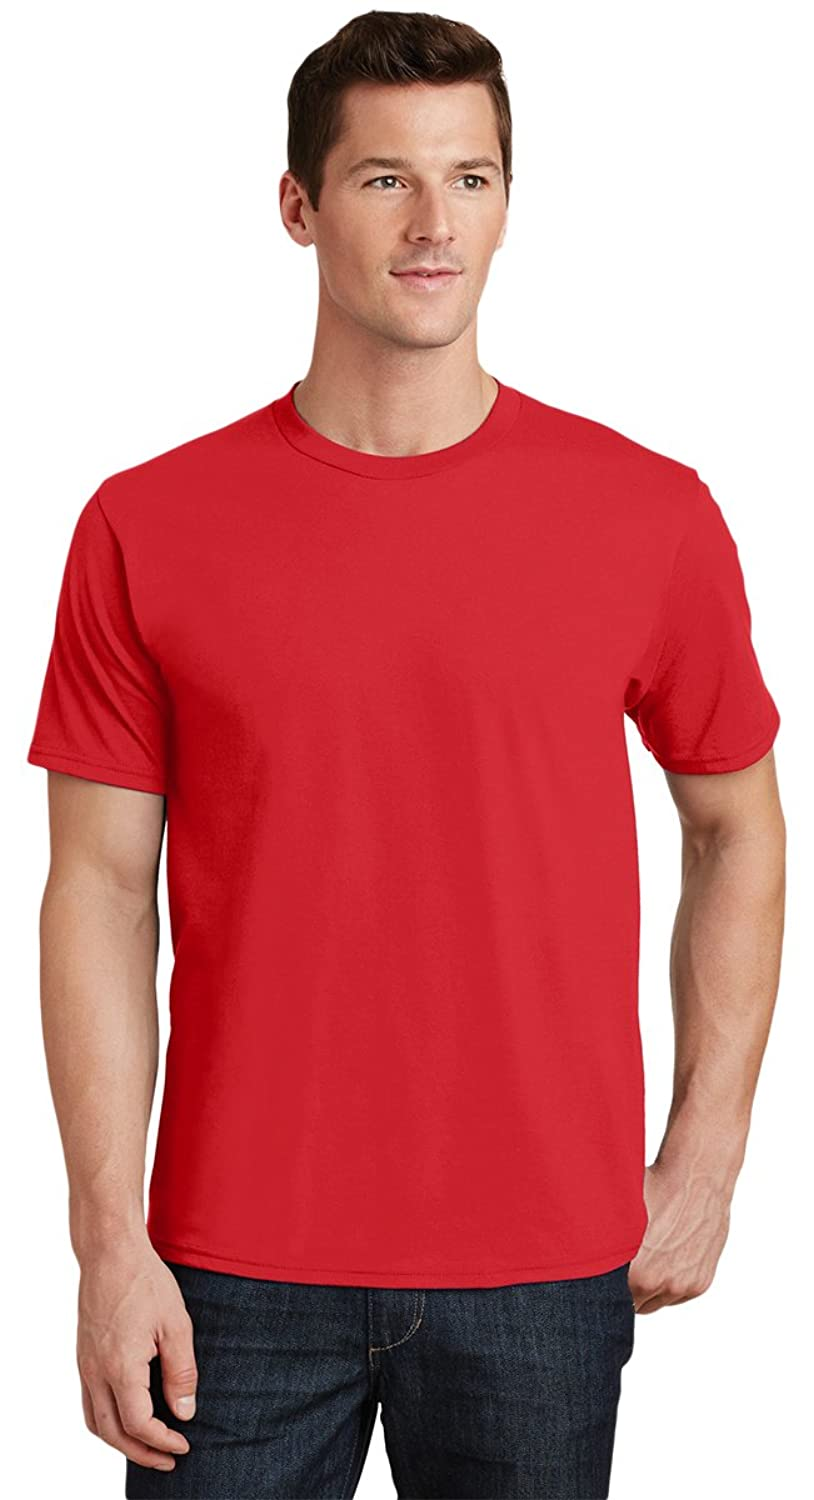 NEW Port & Company Men's Sports T-Shirt_Bright Red_XXXXX-Large